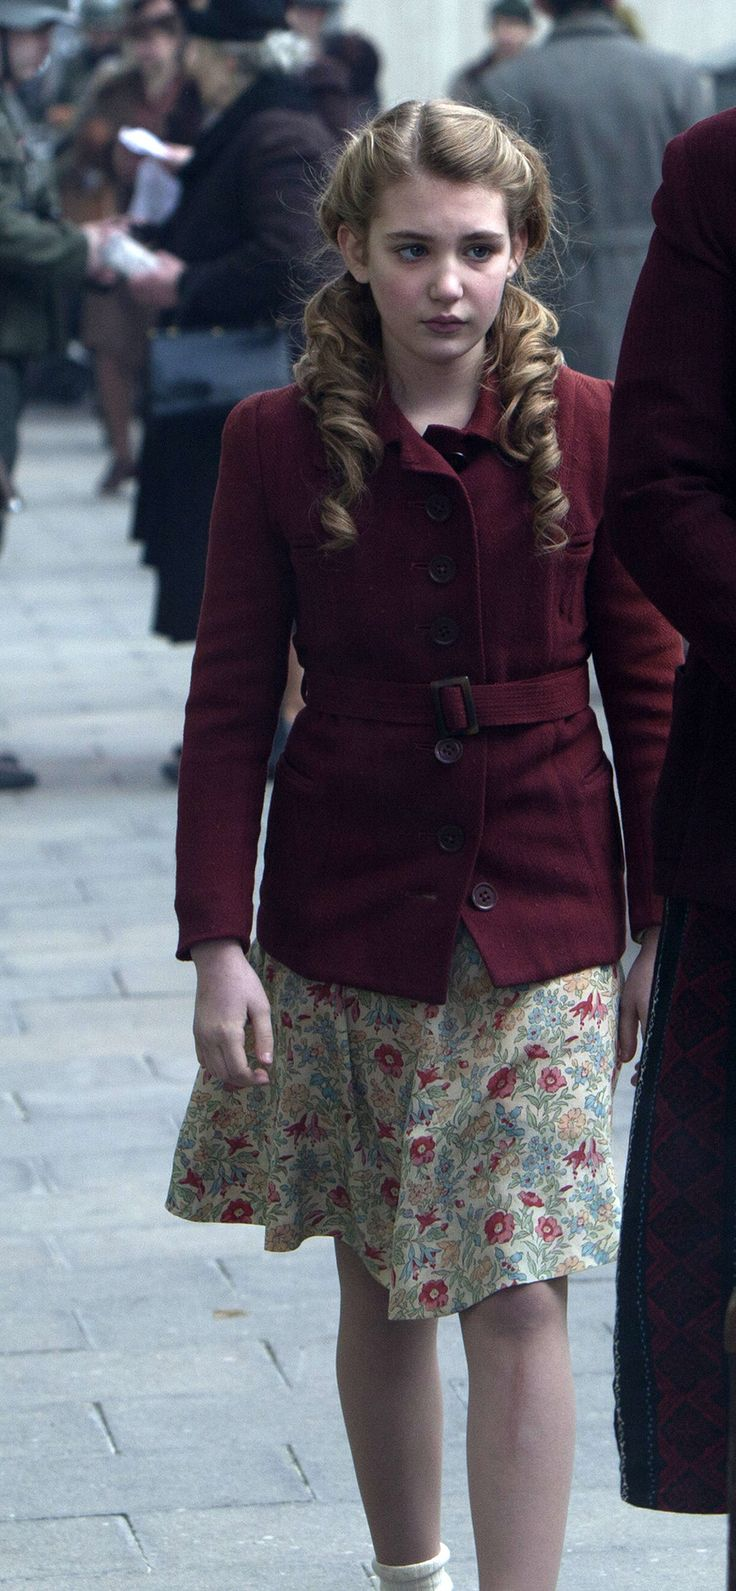 Sophie Nélisse in The Book Thief